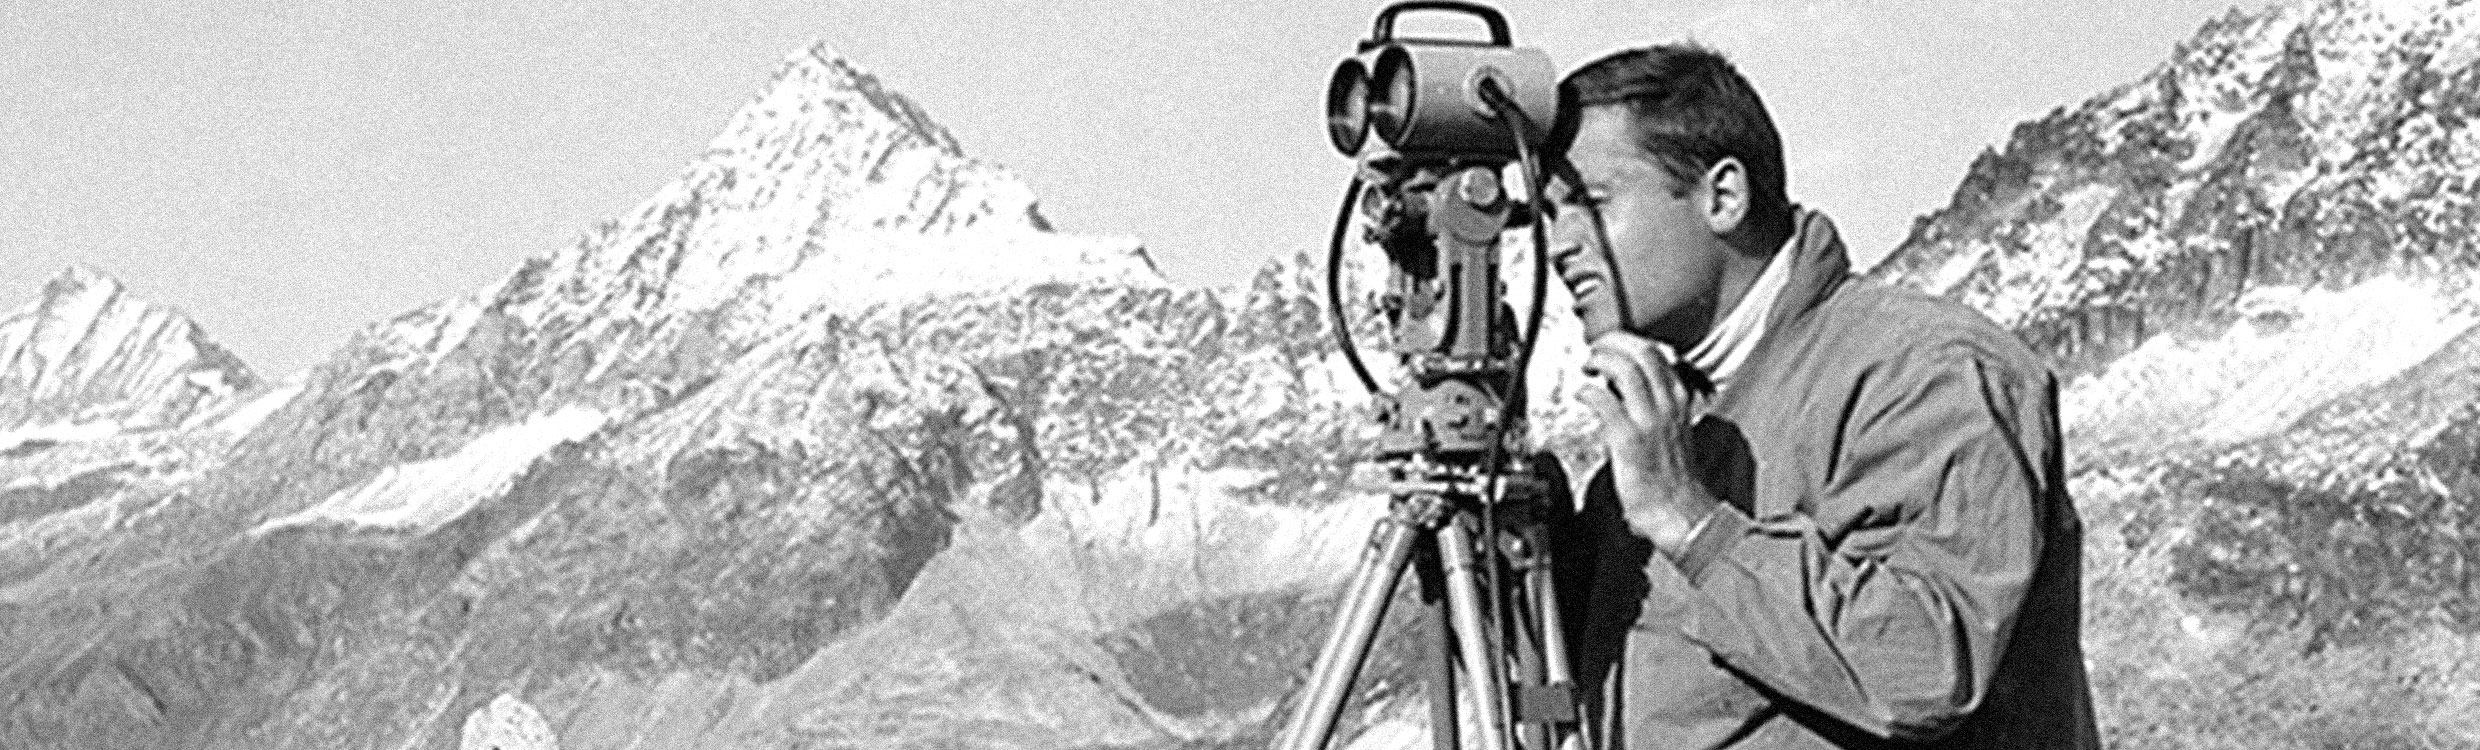 Leica has a long track record in high-accuracy surveying equipment